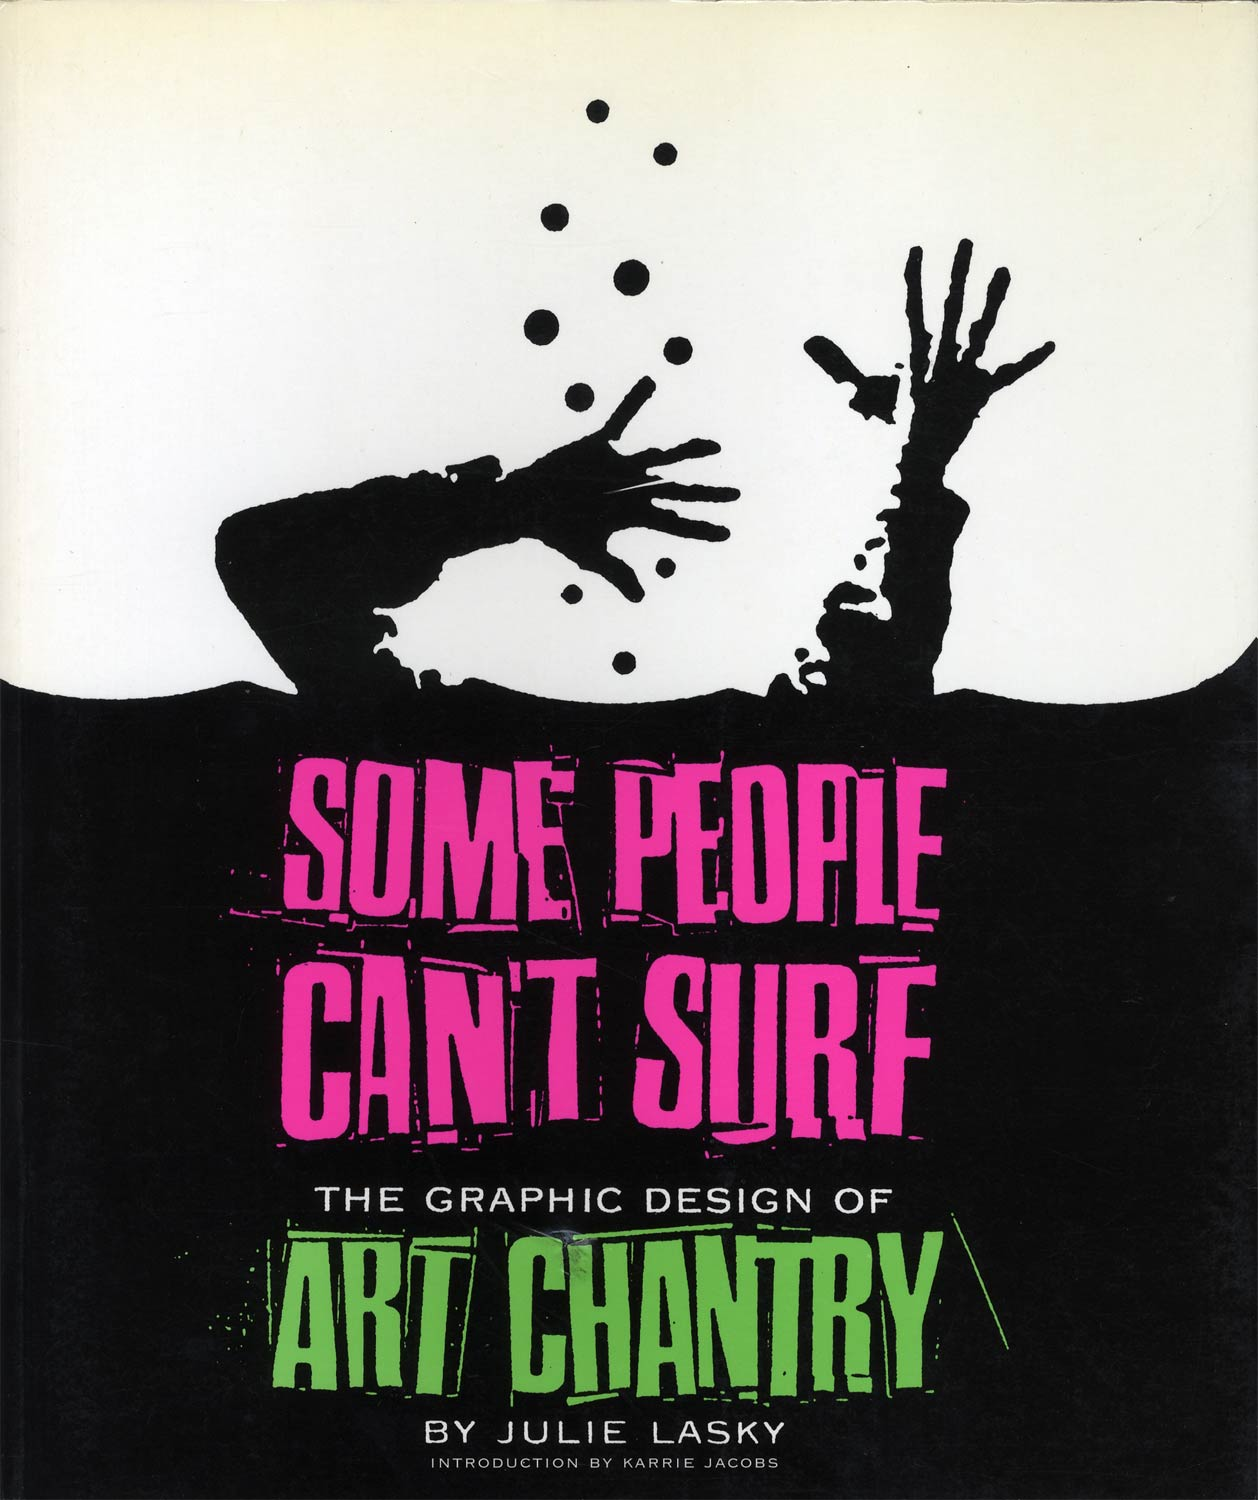 Some People Can't Surf The Graphic Design of Art Chantry